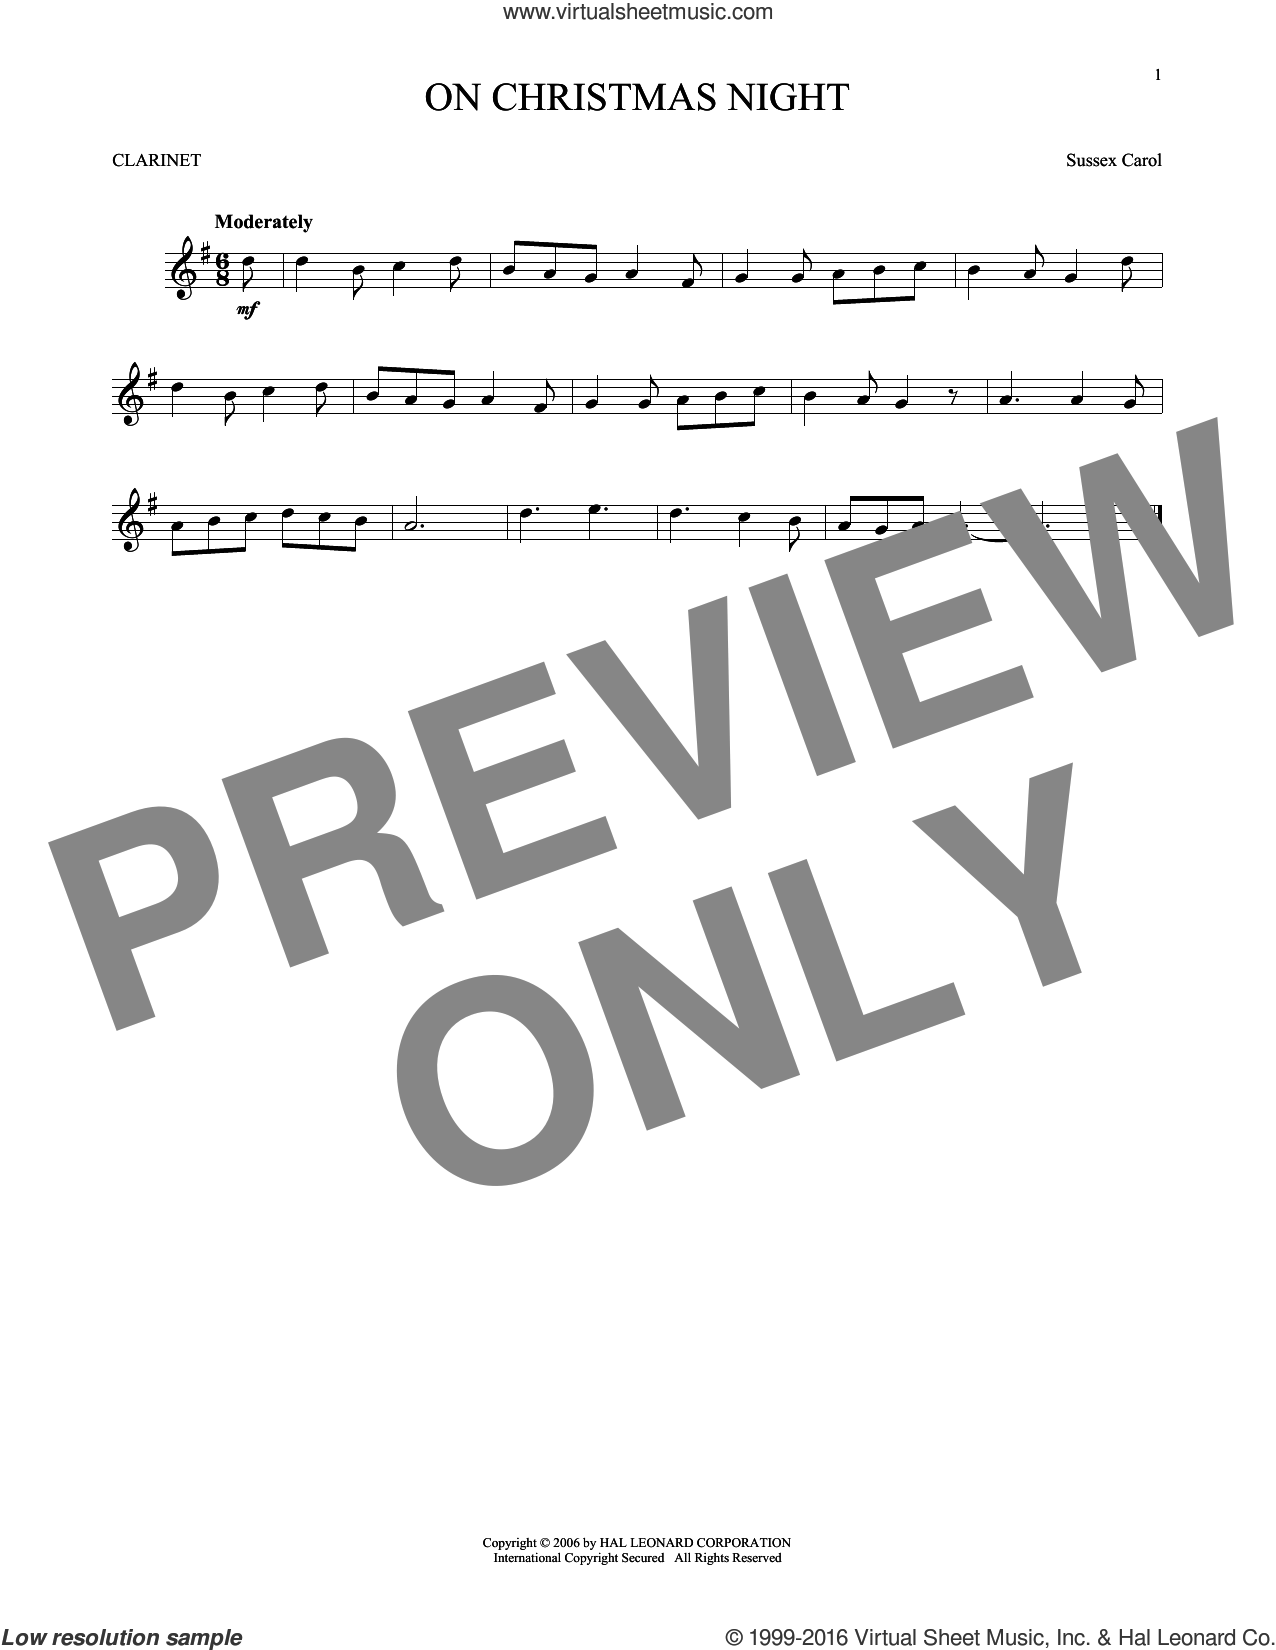 On Christmas Night sheet music for clarinet solo, intermediate skill level